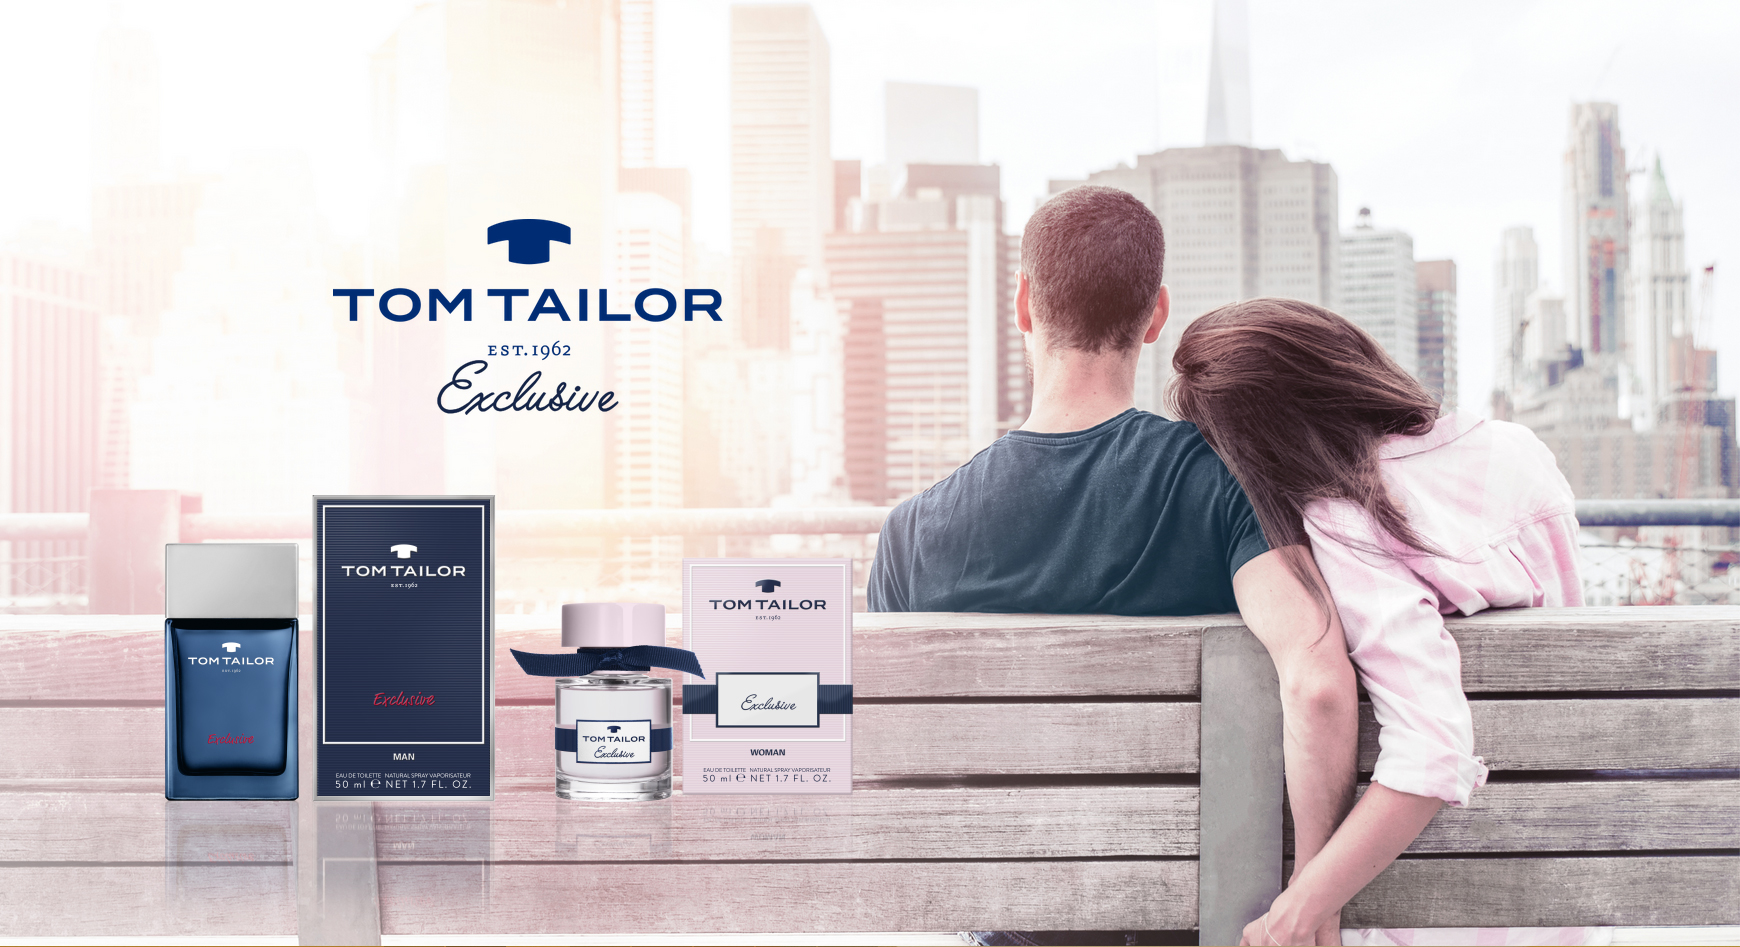 Zom Tailor Tom Tailor Exclusive Man Tom Tailor Cologne A New